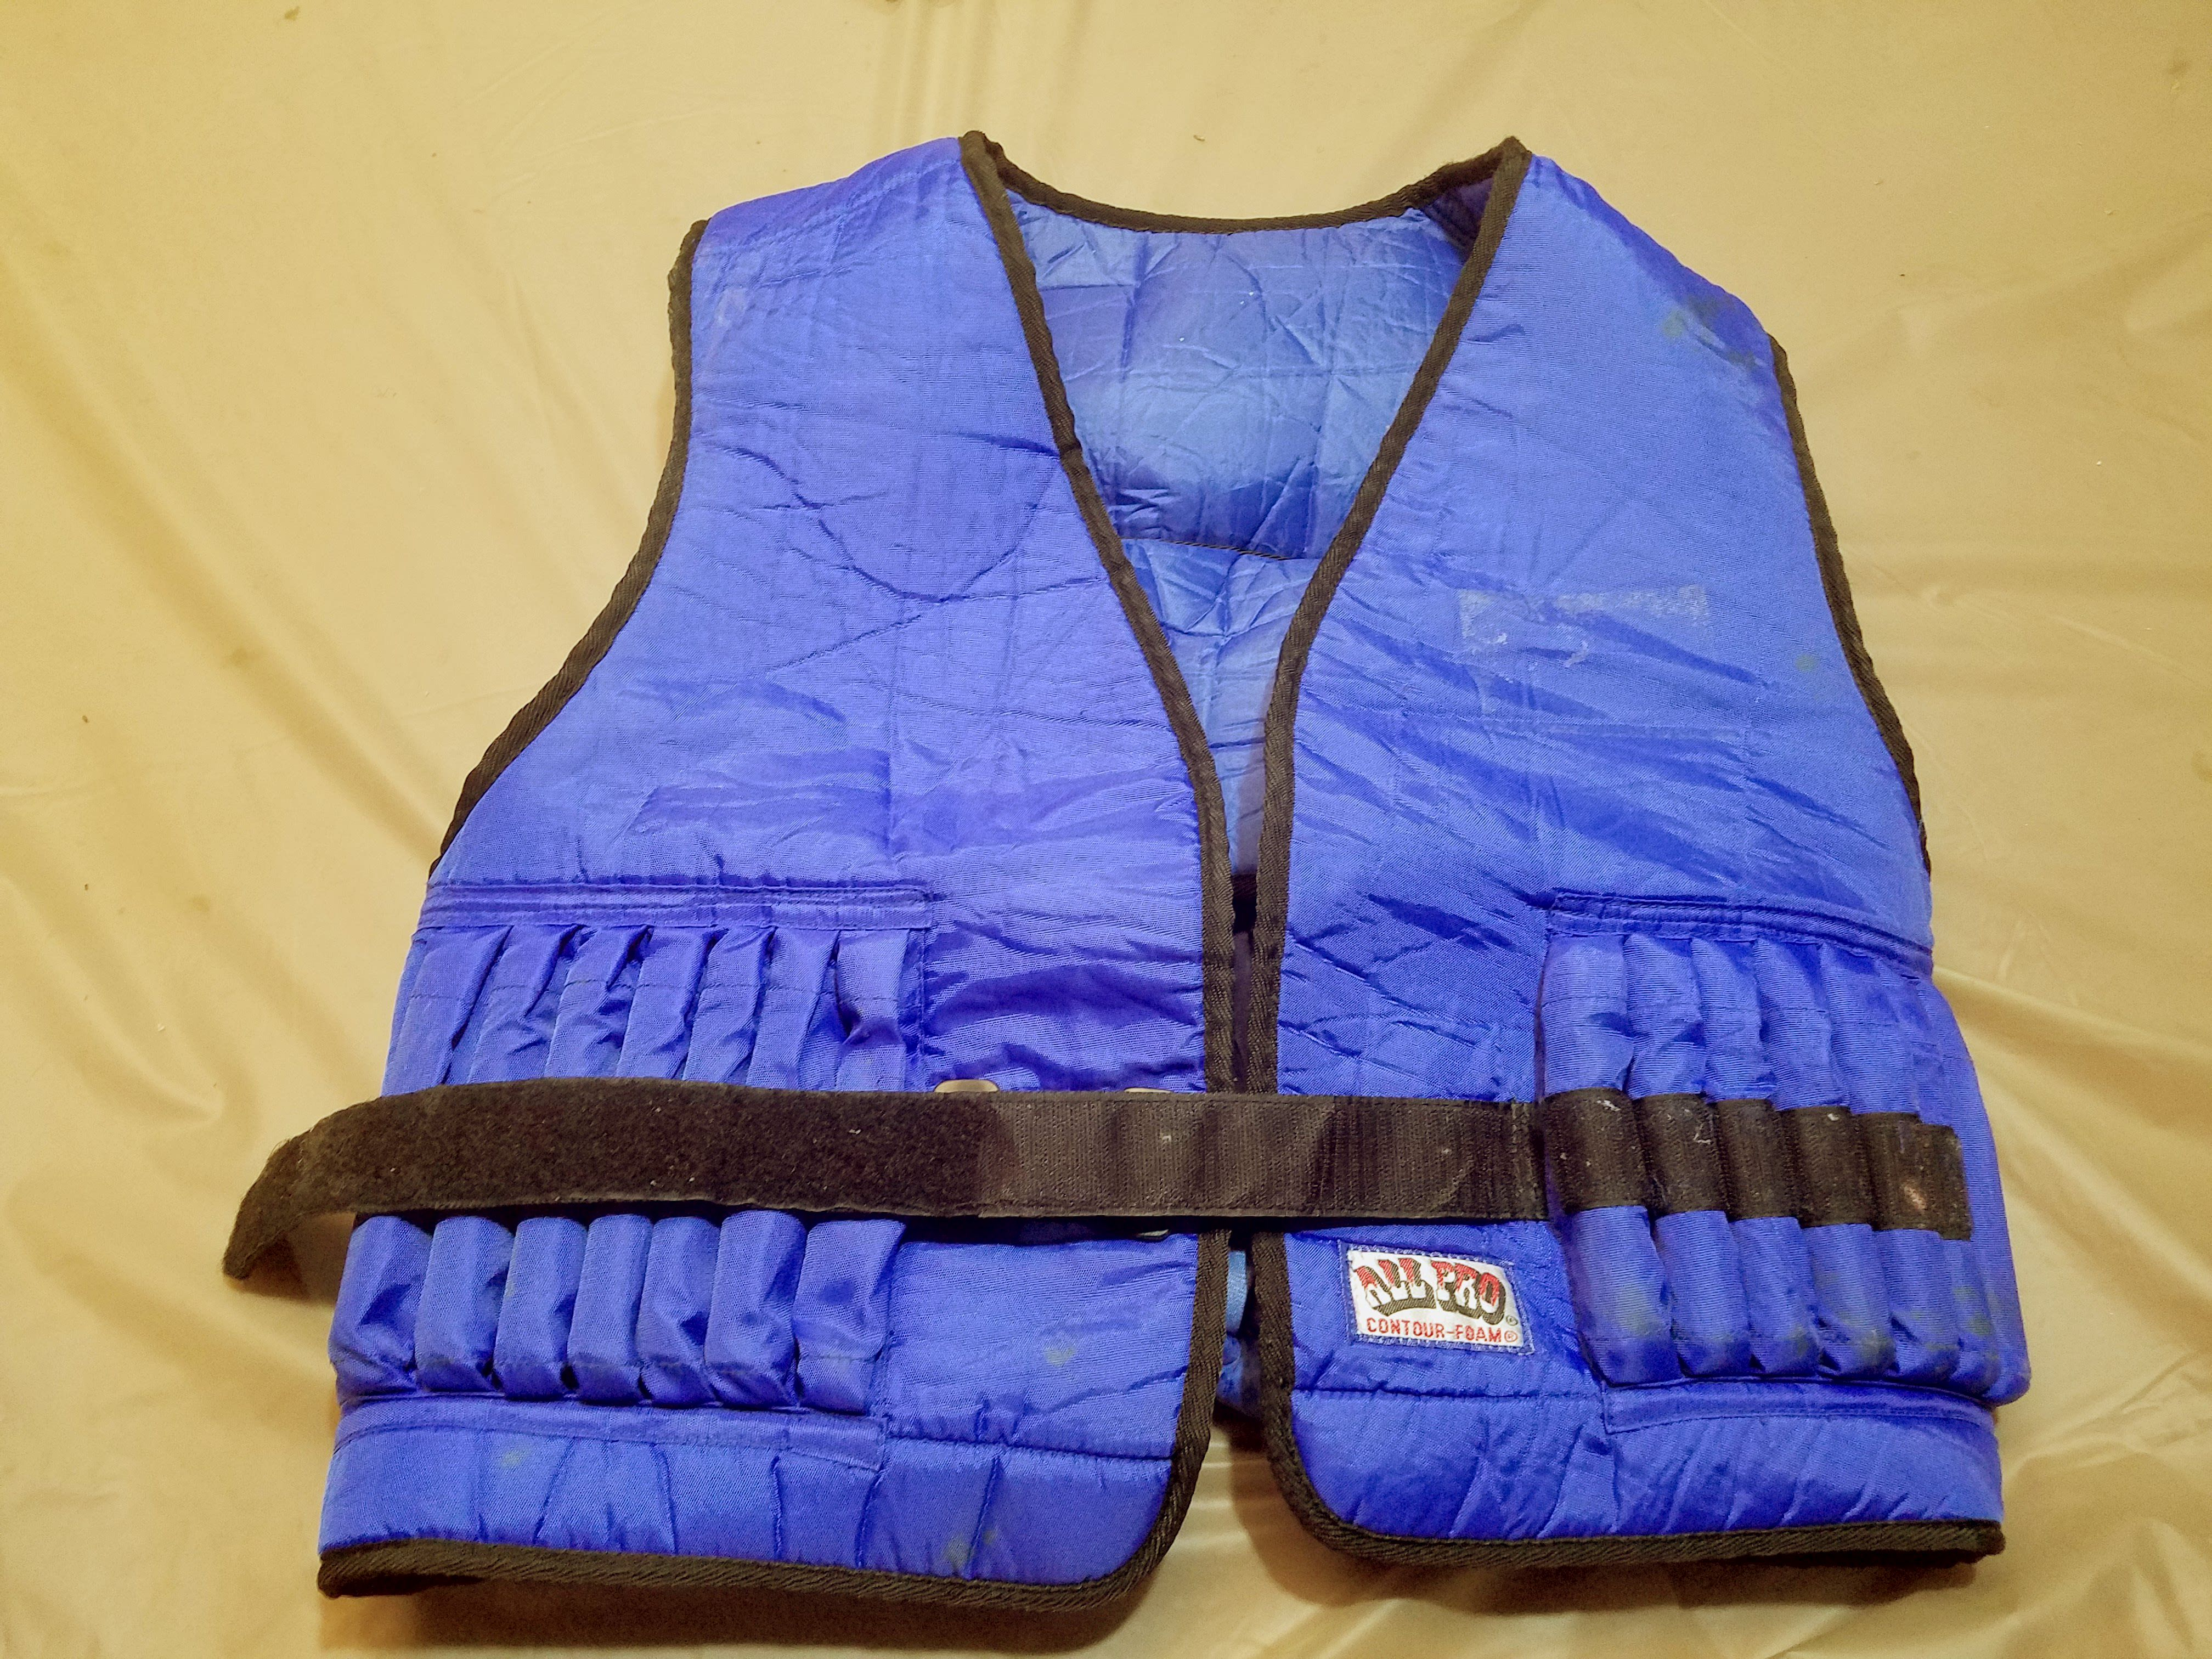 40 lb weighted vest